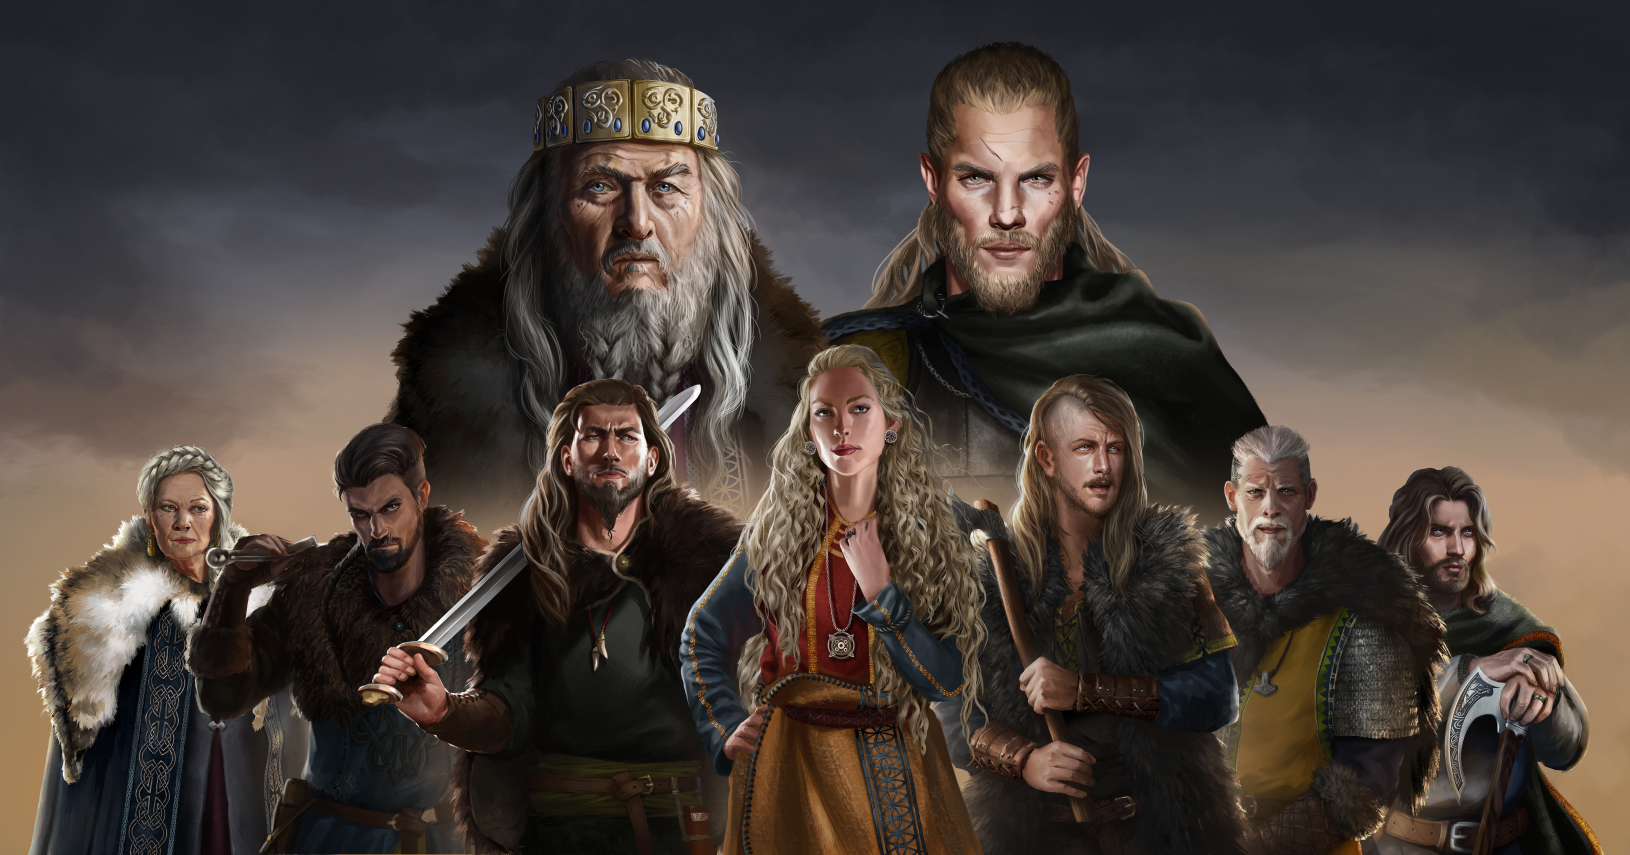 an analysis of the character of wiglaf in beowulf I will attempt to base my analysis of beowulf''s weaknesses on textual  initially,  young beowulf is characterized as a bold warrior who, in assisting hrothgar in   character''s daily activity, the relationship with his anonymous retainers is chiefly.